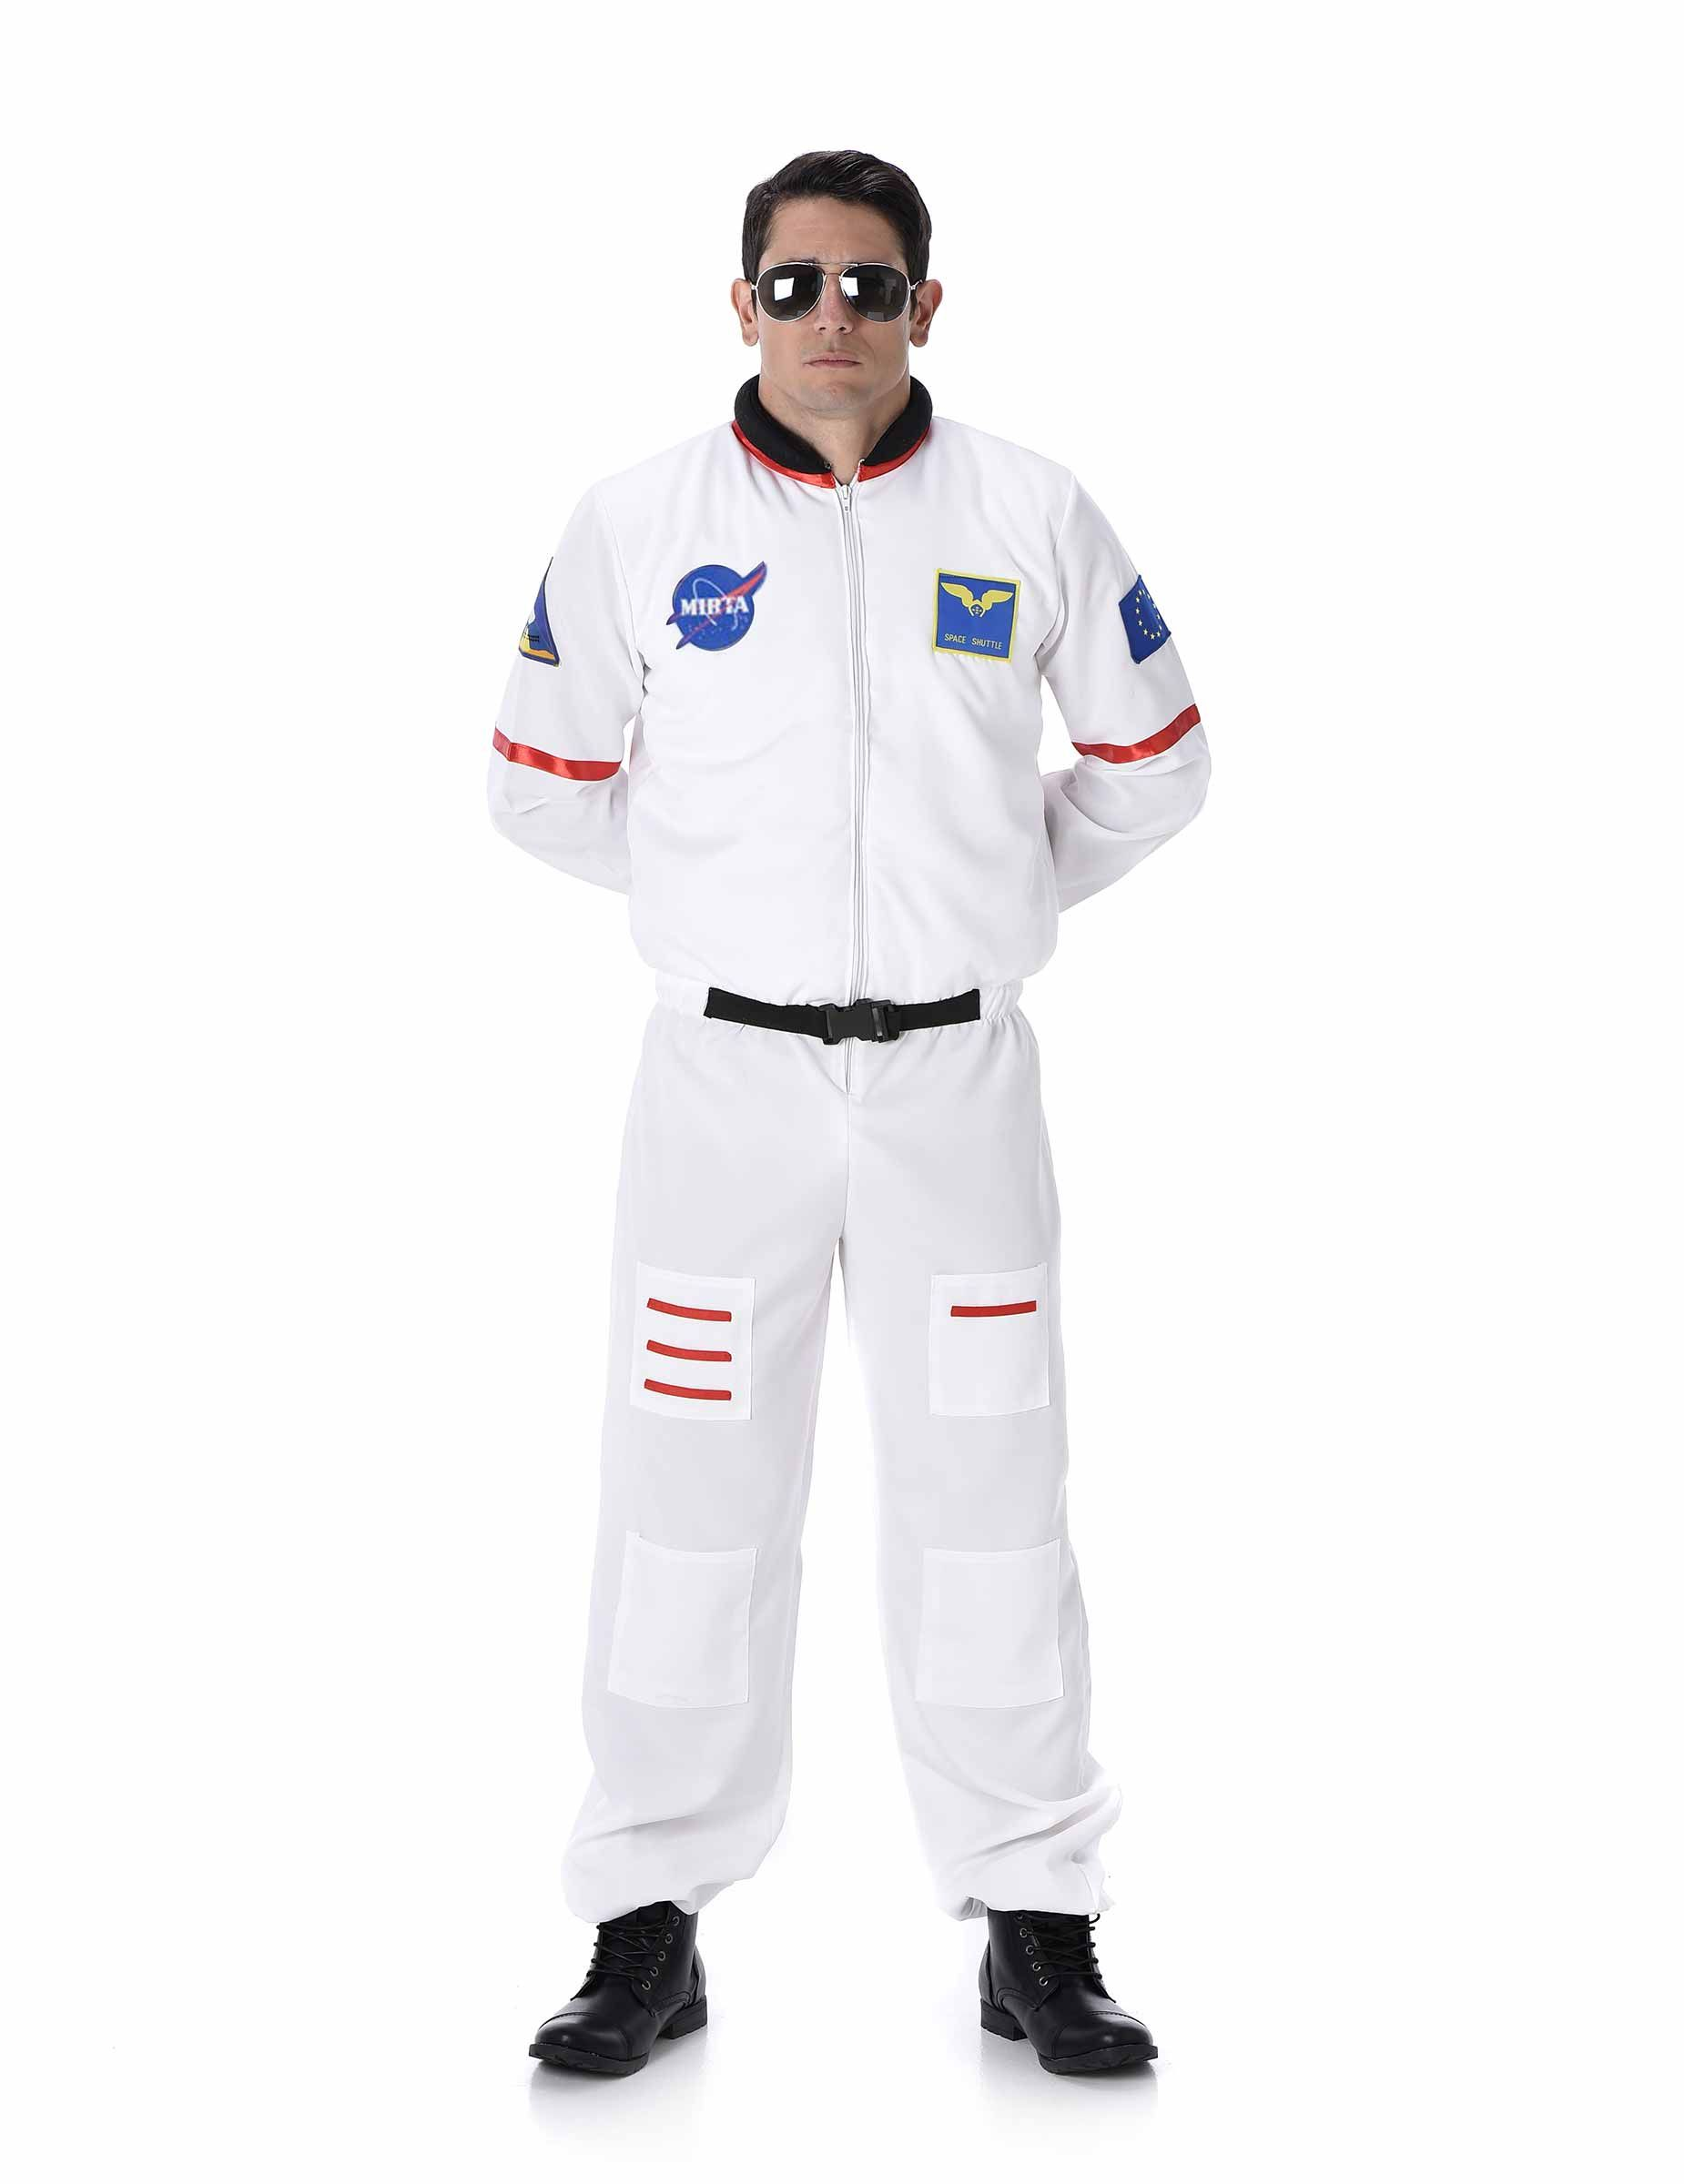 Astronaut Costume For Men Astronaut Costume Costumes Astronaut